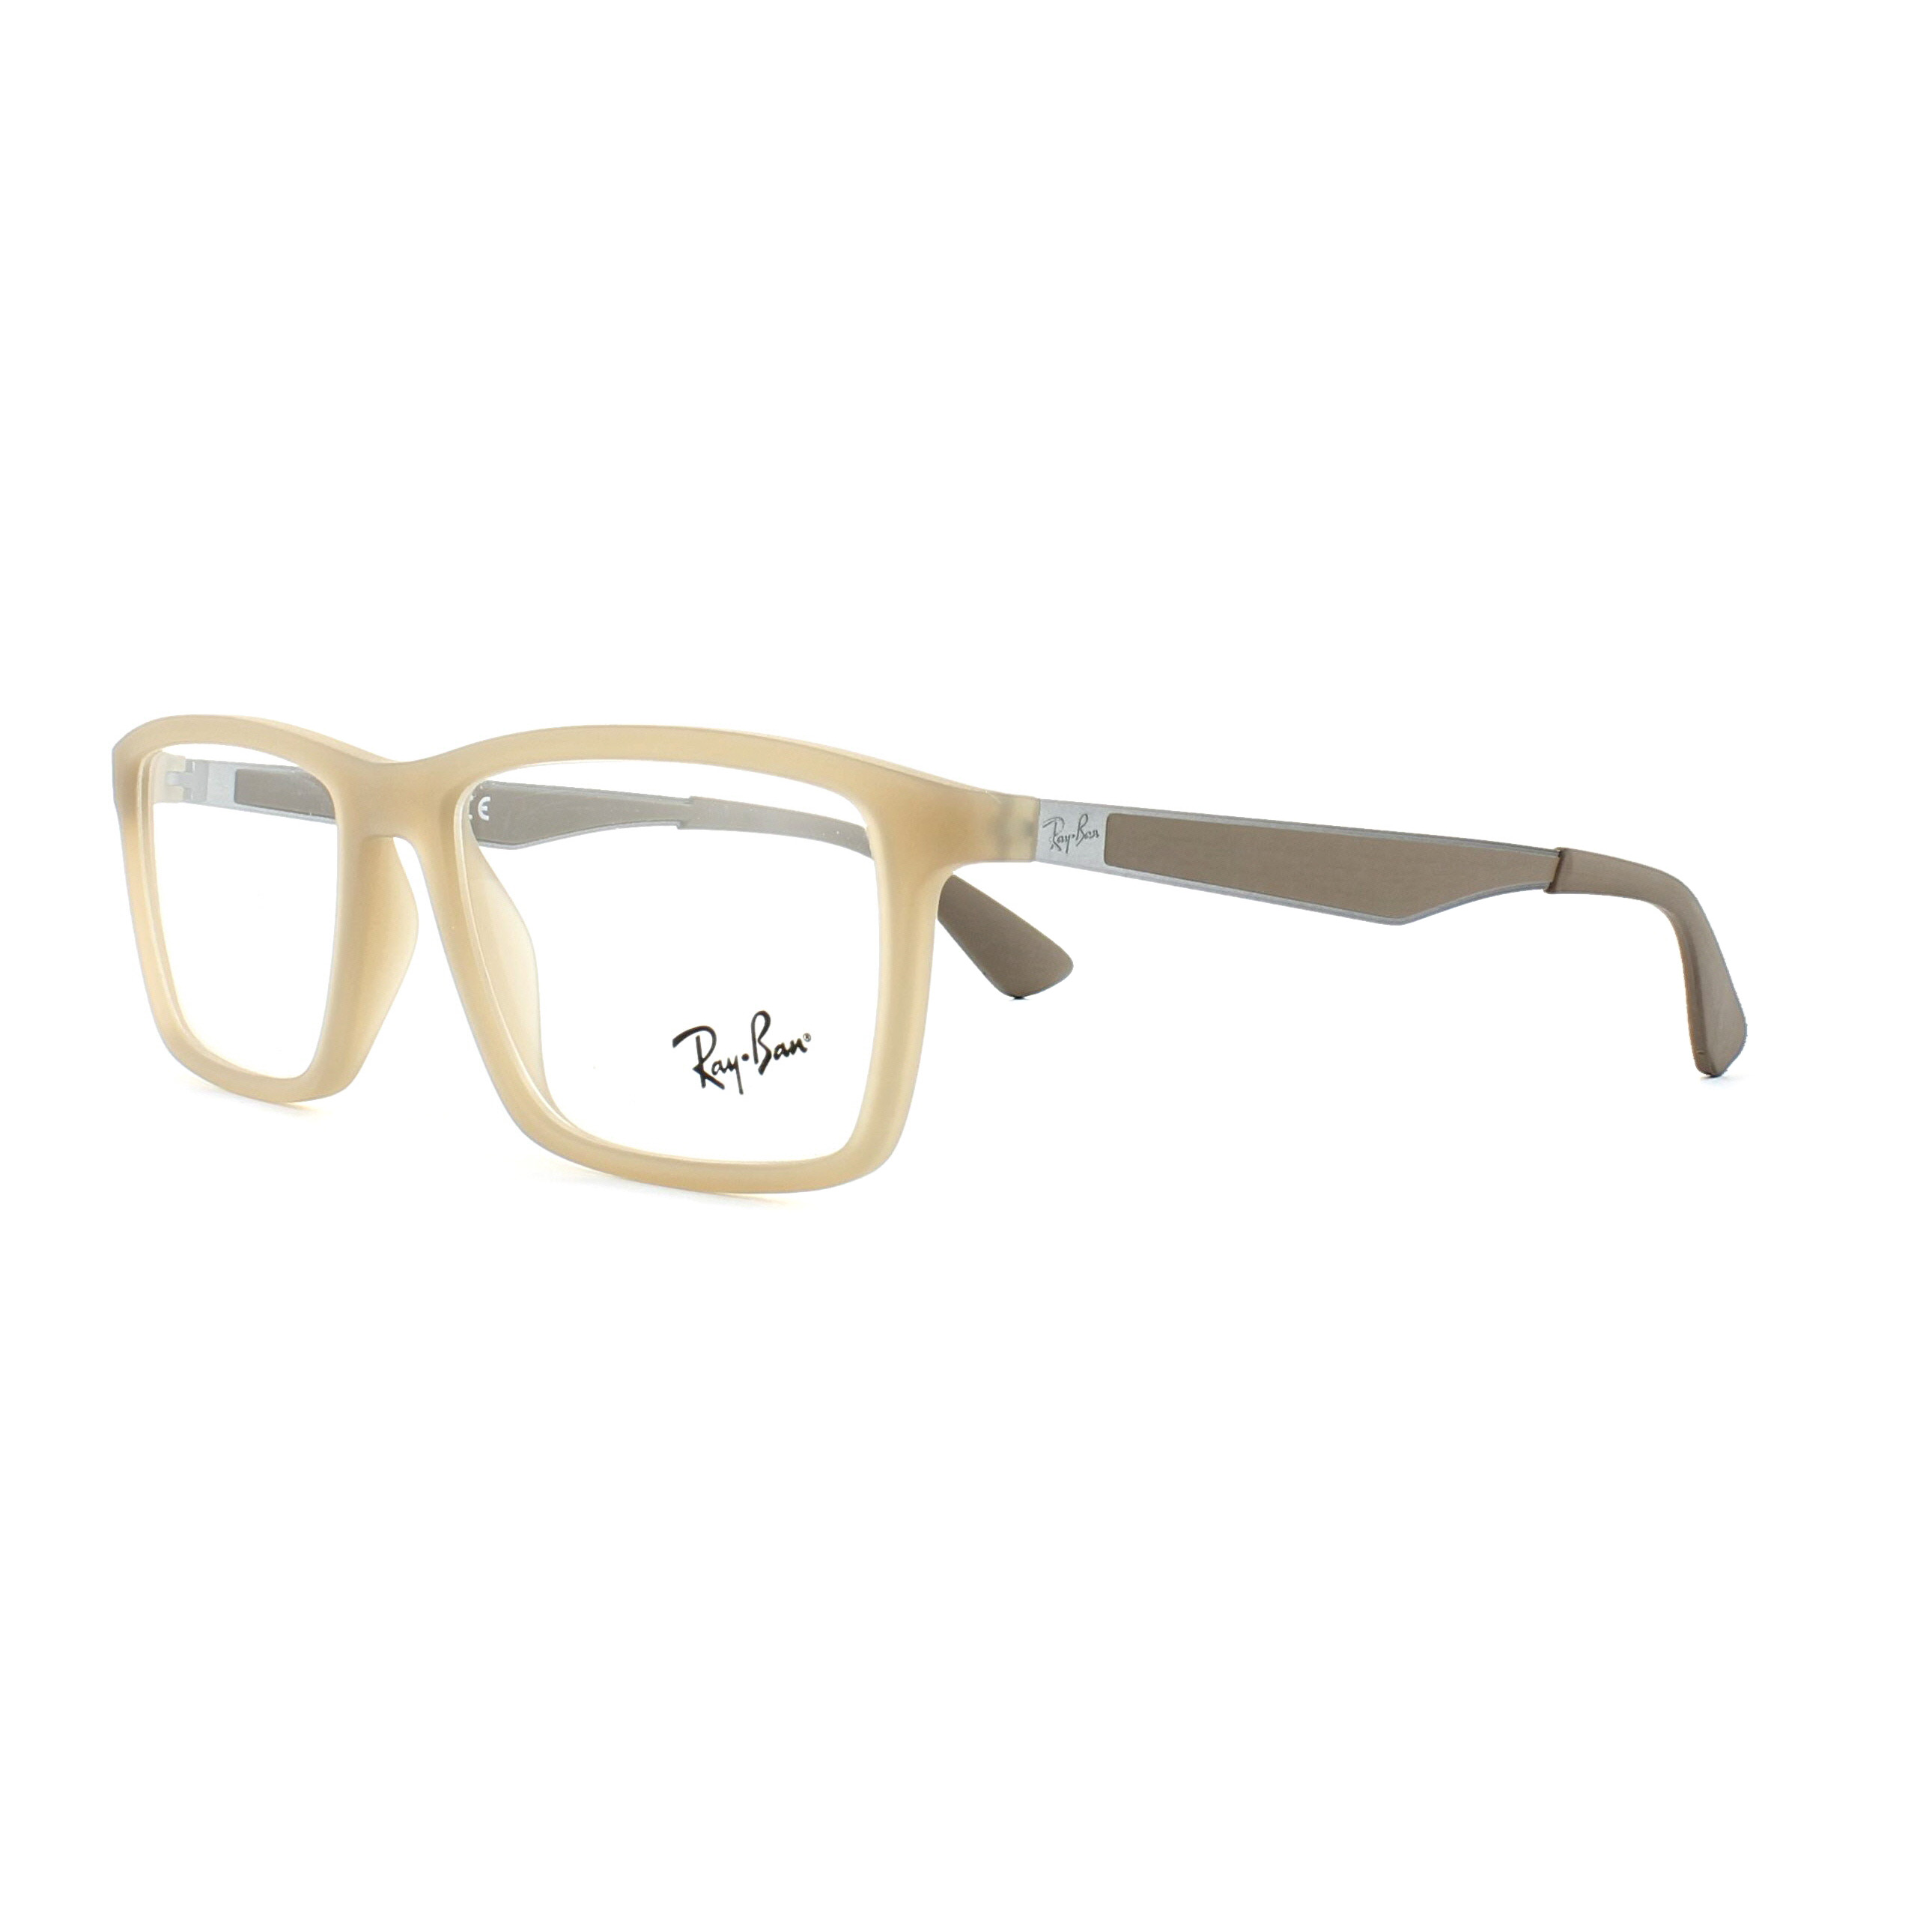 964f637da5 Sentinel Ray-Ban Glasses Frames 7056 5646 Matt Beige 53mm Mens